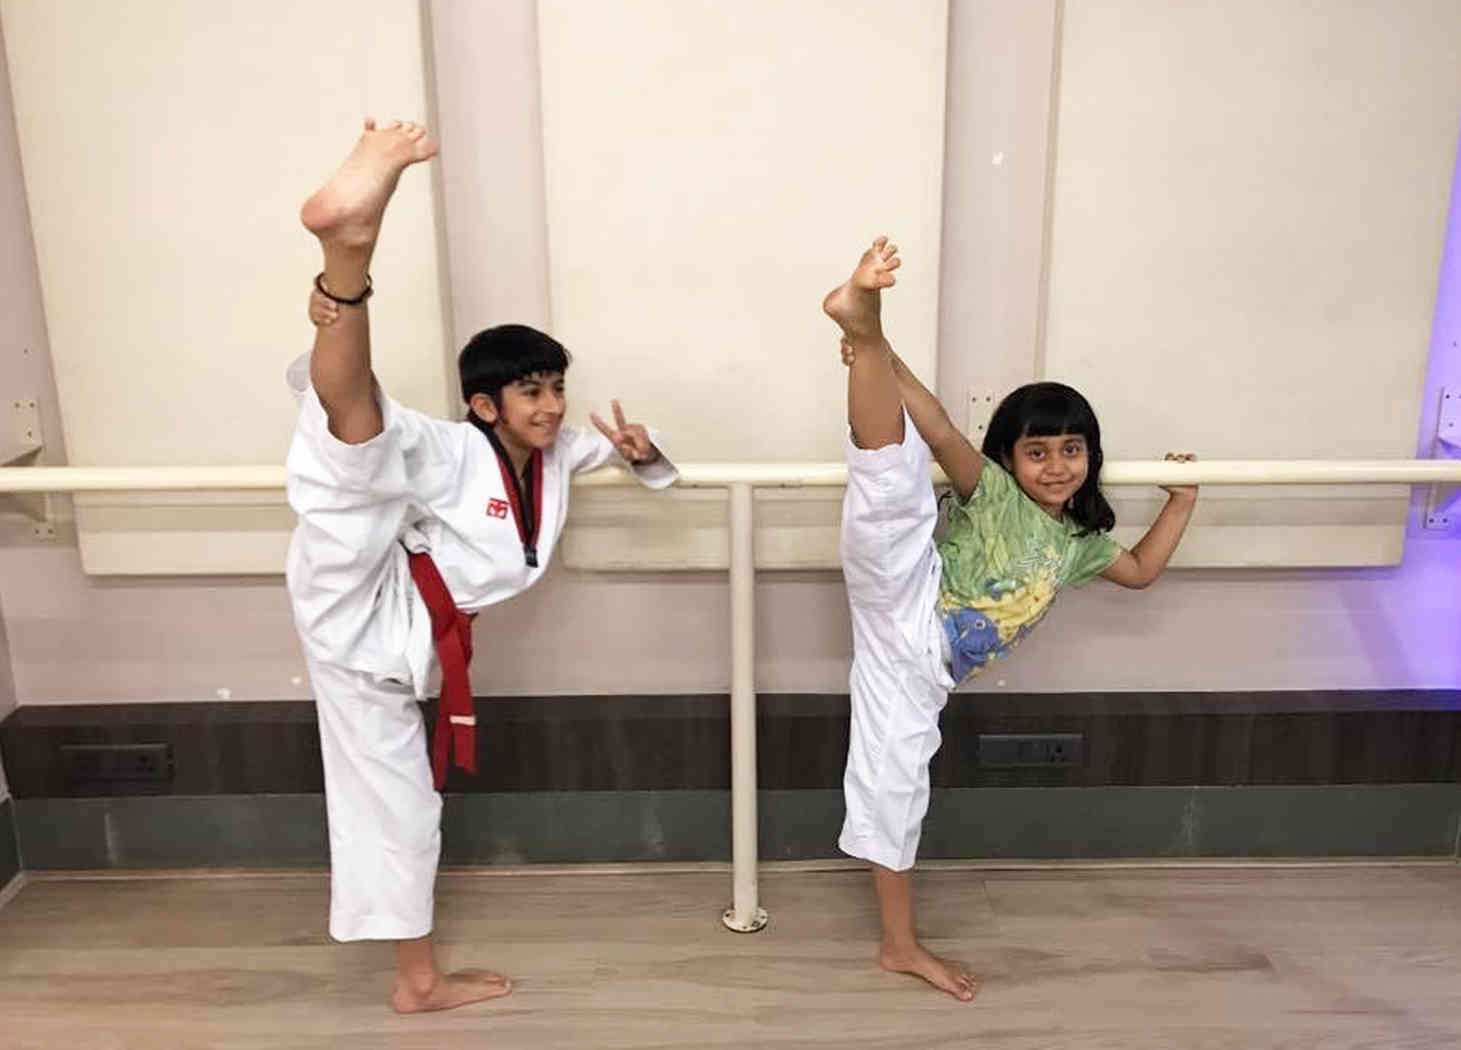 Taekwondo kids demo in basement studio